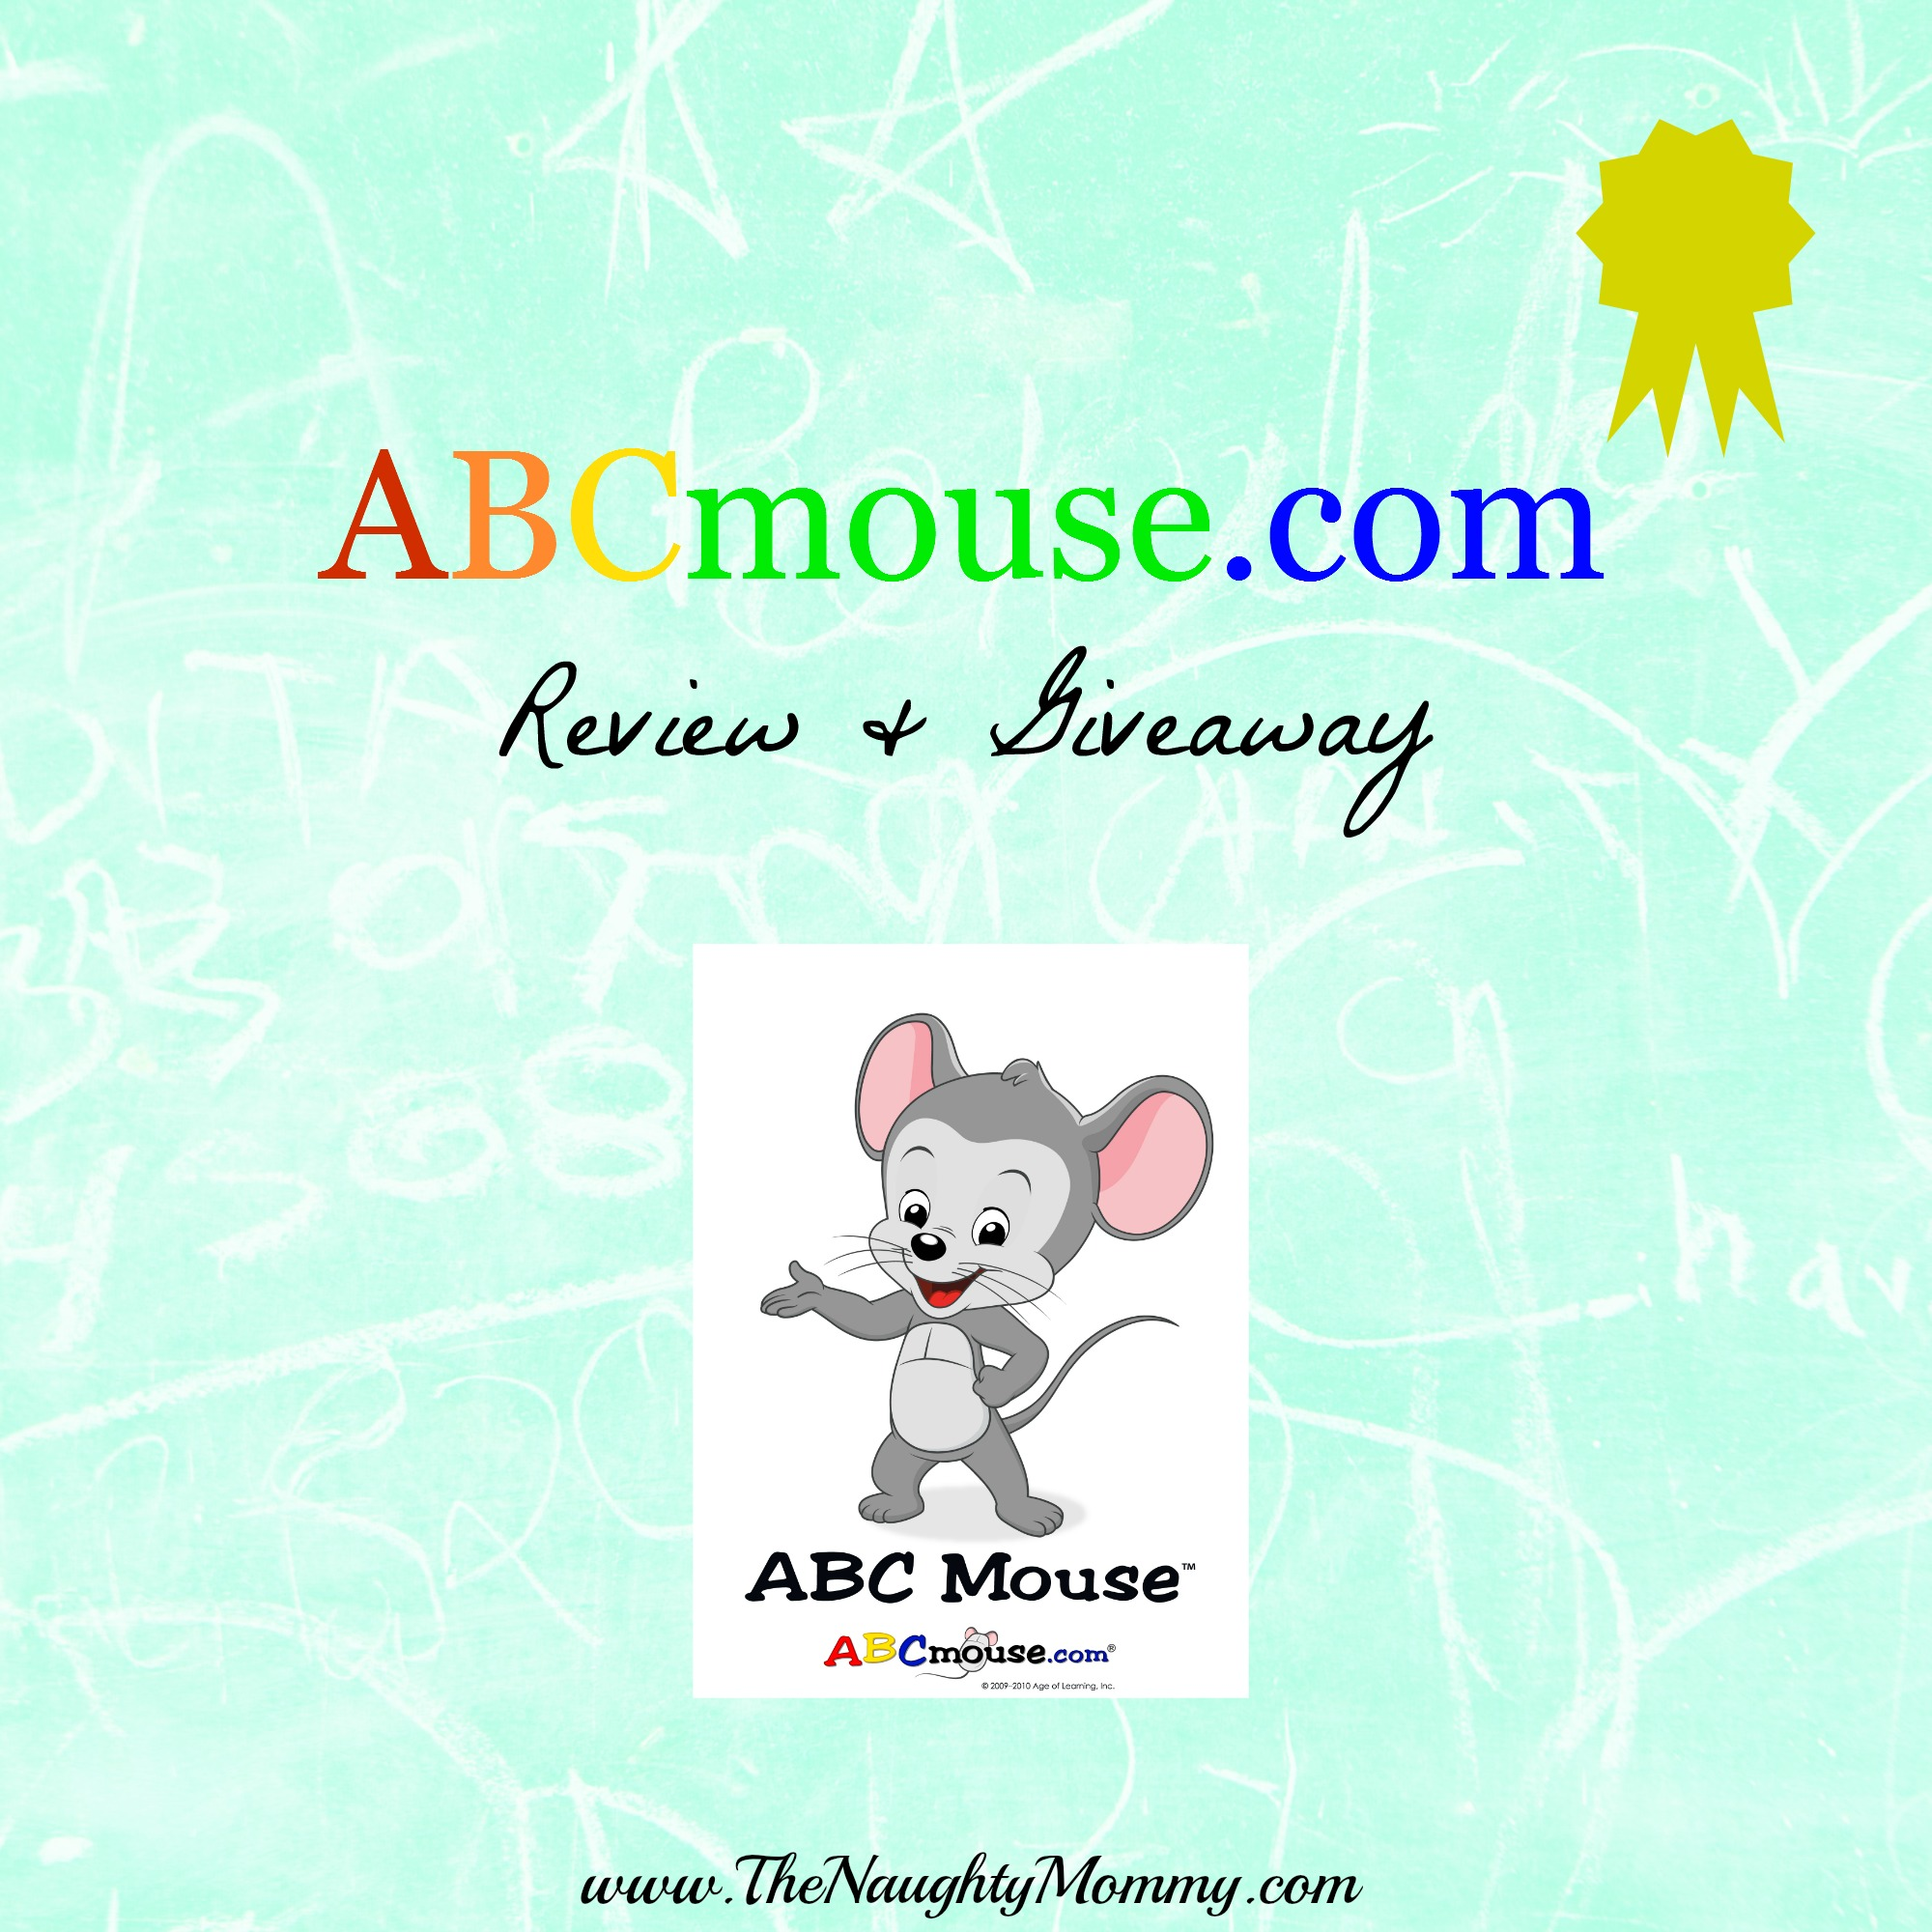 Www abcmouse com reviews : Where to get ipad mini screen